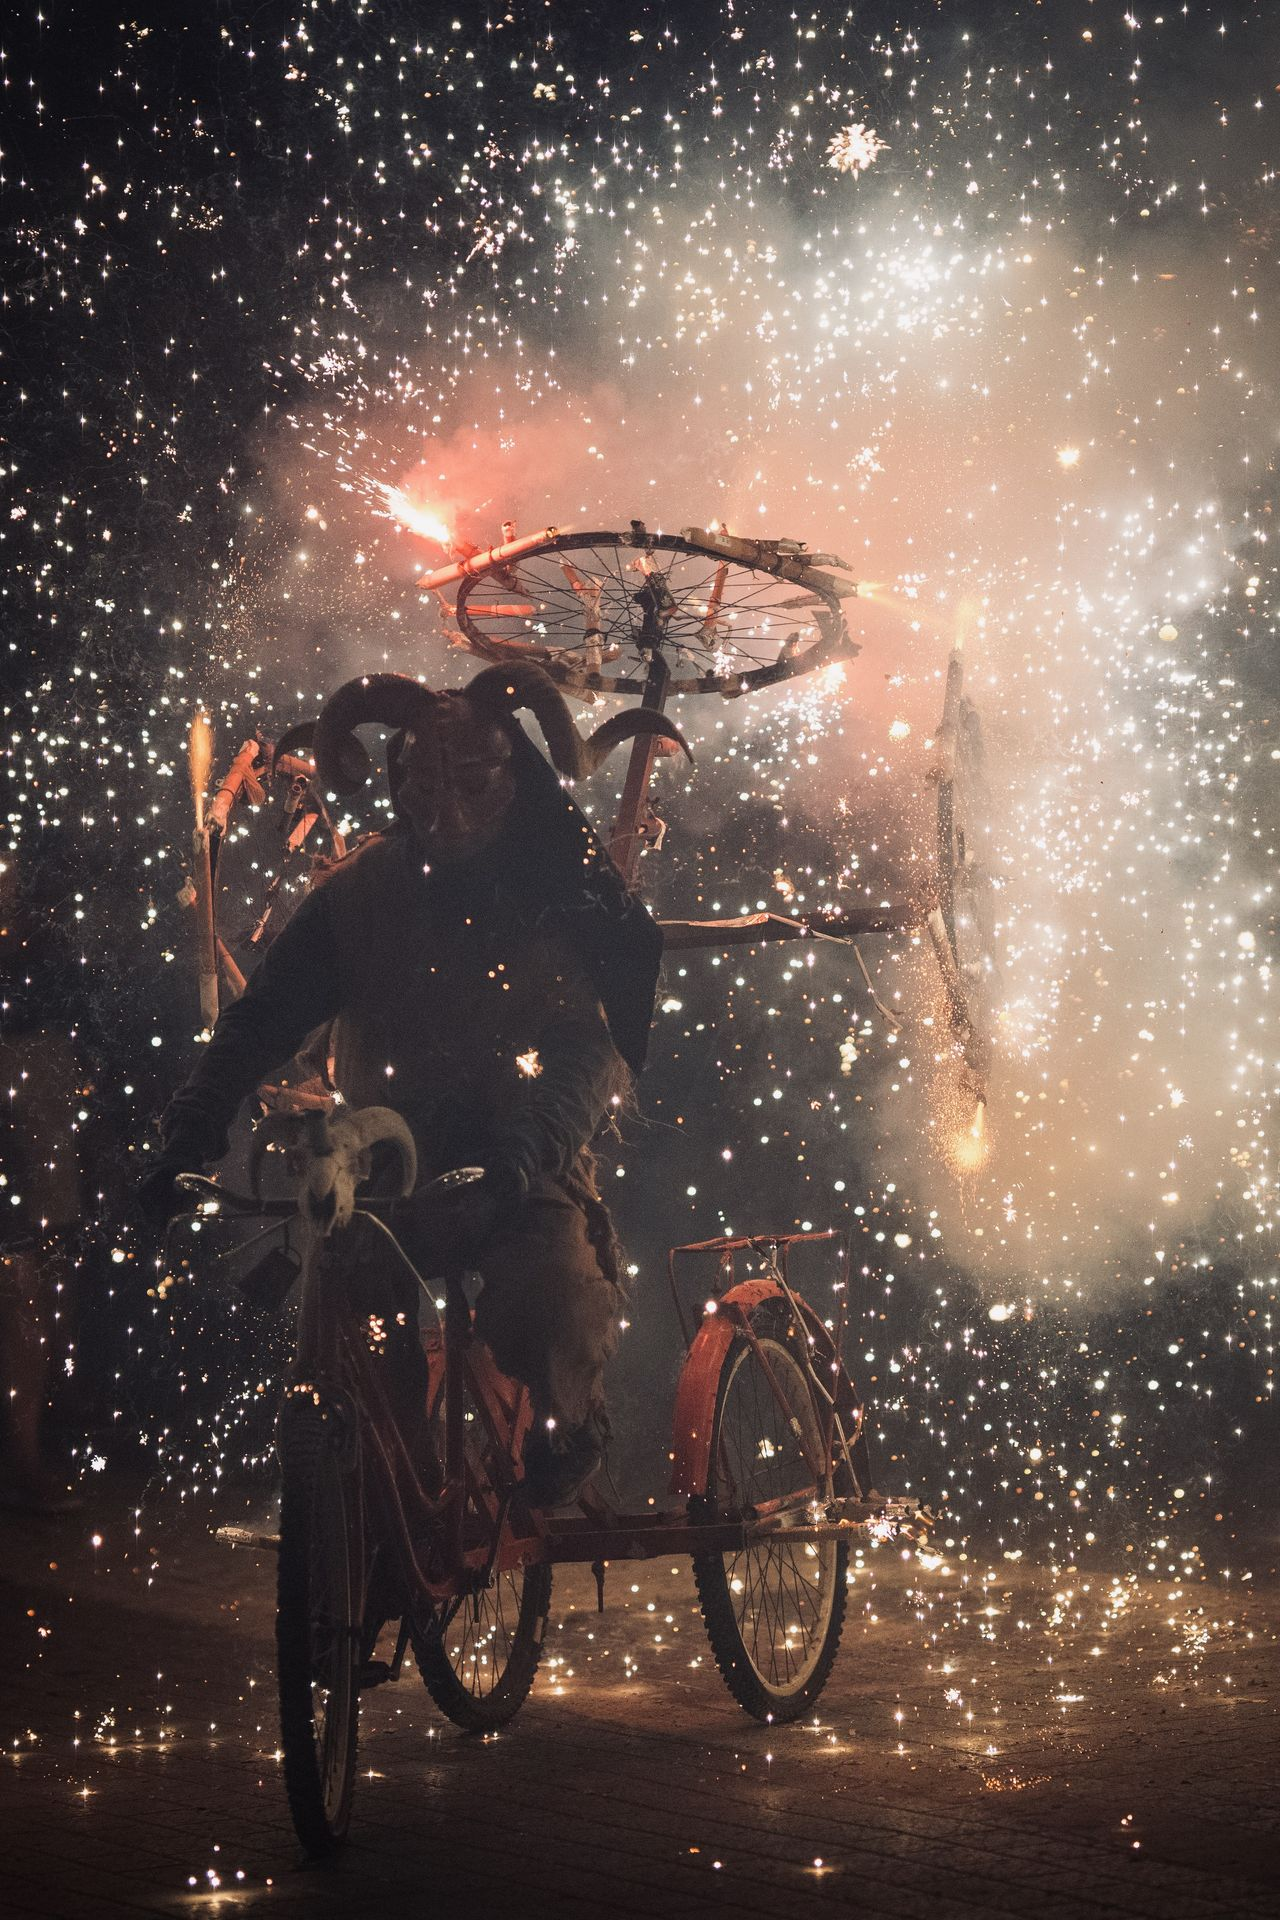 Bicycles parked in city at night fireworks at dimonis festival in majorca spain